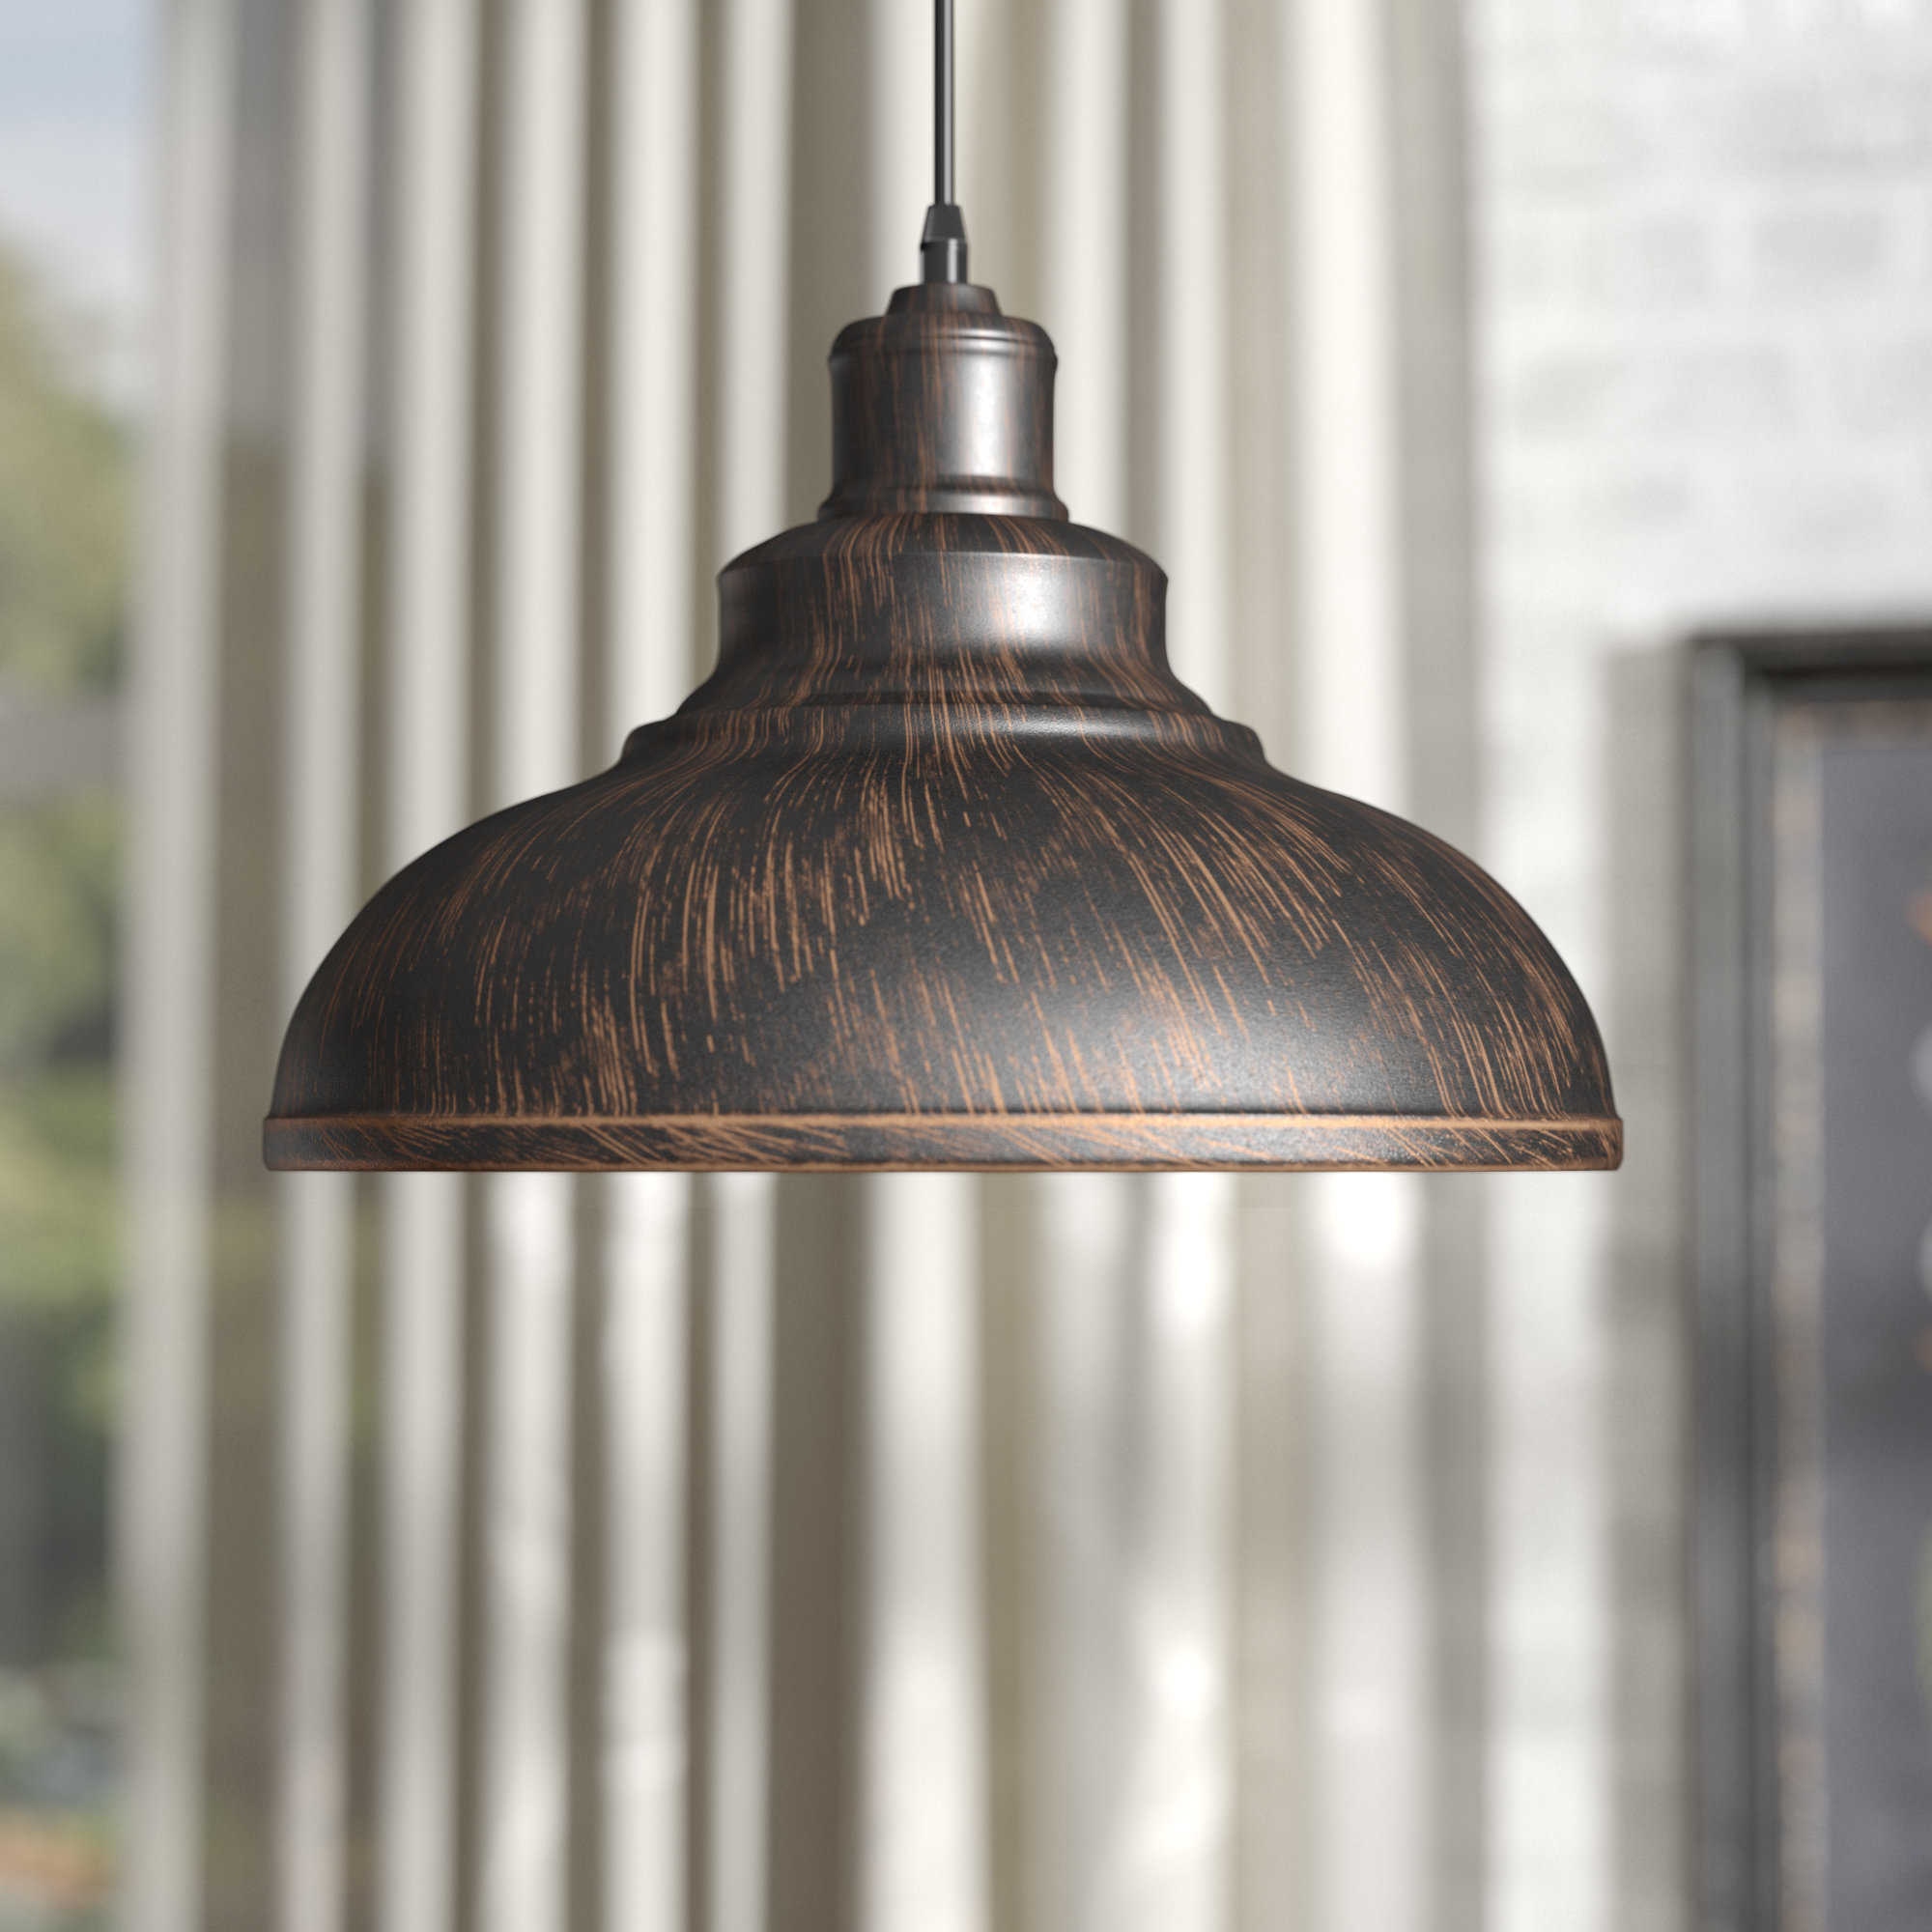 Adriana Black 1 Light Single Dome Pendants Within Most Recently Released Laurel Foundry Modern Farmhouse Estella 1 Light Dome Pendant (View 13 of 25)